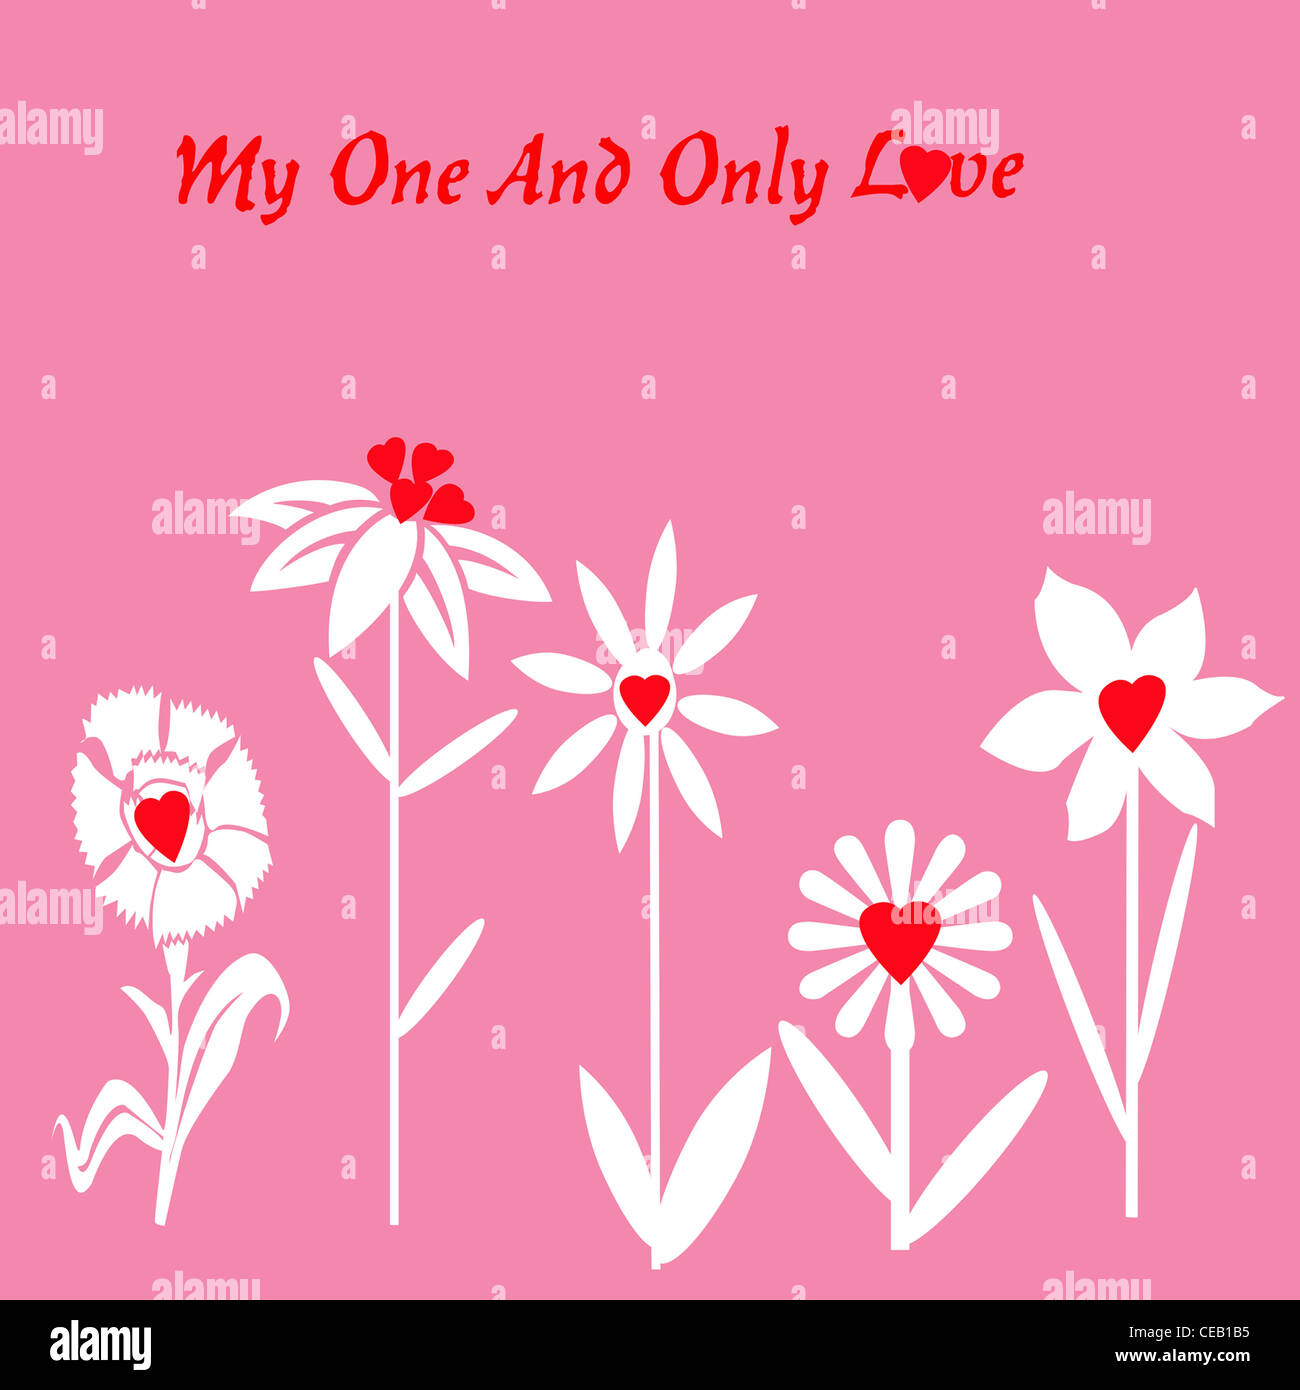 Flower hearts pink background five white flowers across bottom flower hearts pink background five white flowers across bottom with red heart centers my one and only love in red at top mightylinksfo